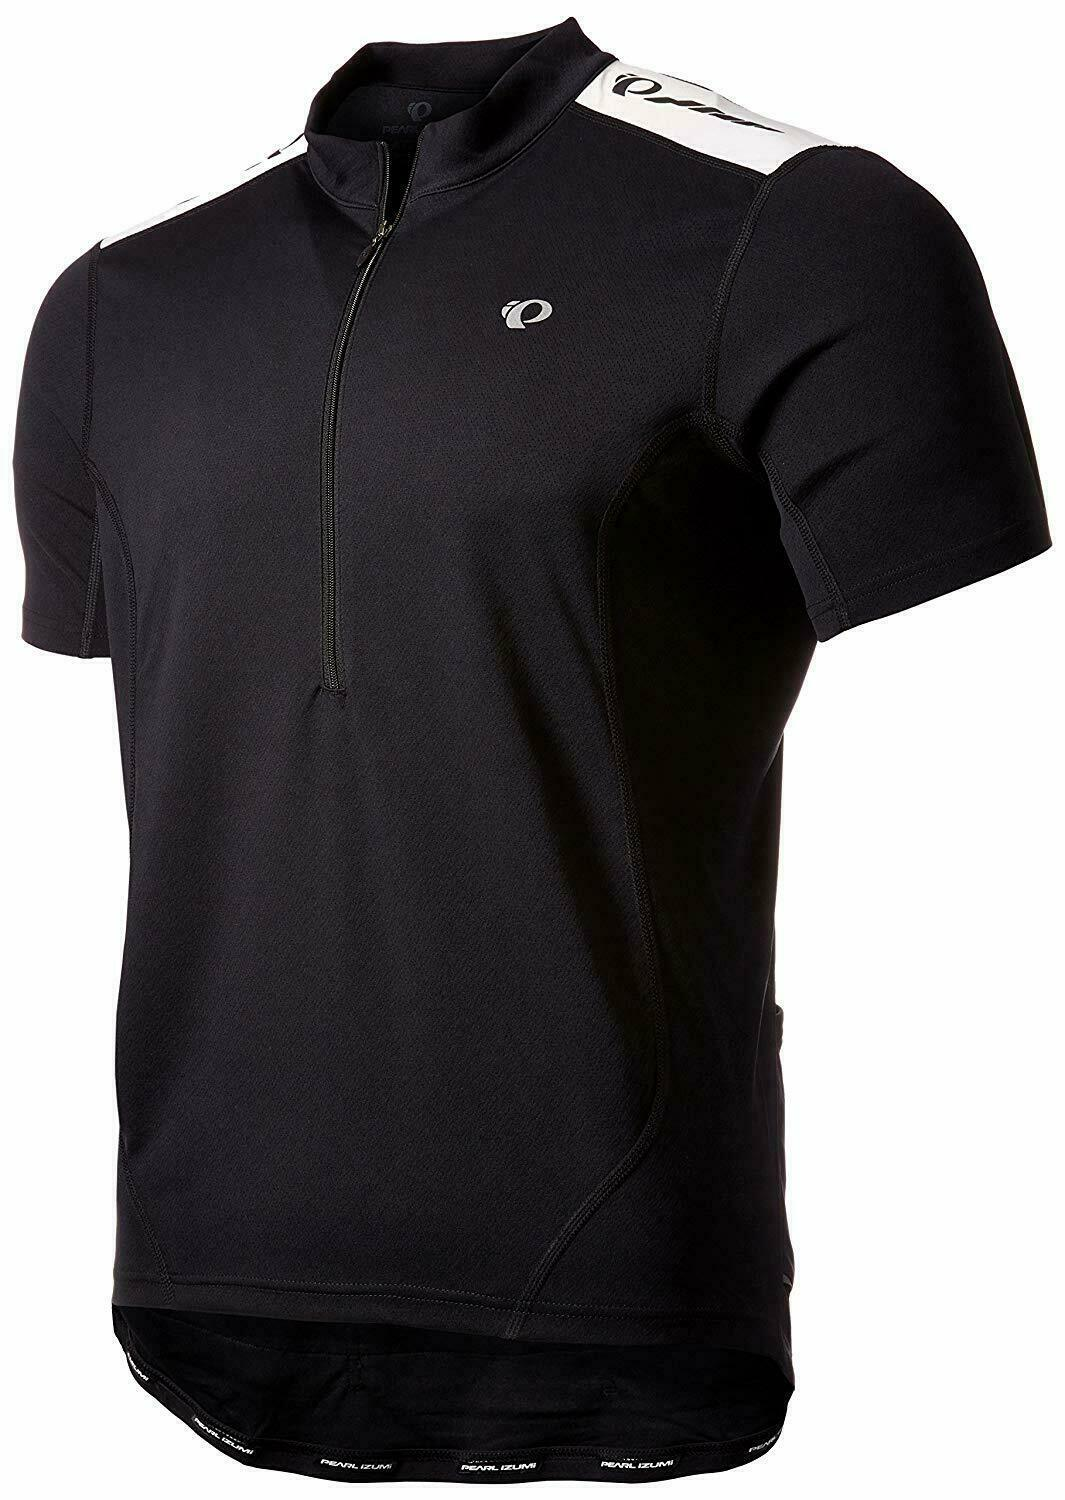 9ddc45cb0 Pearl Izumi QUEST Mens Short Sleeve Cycling Jersey Black Small